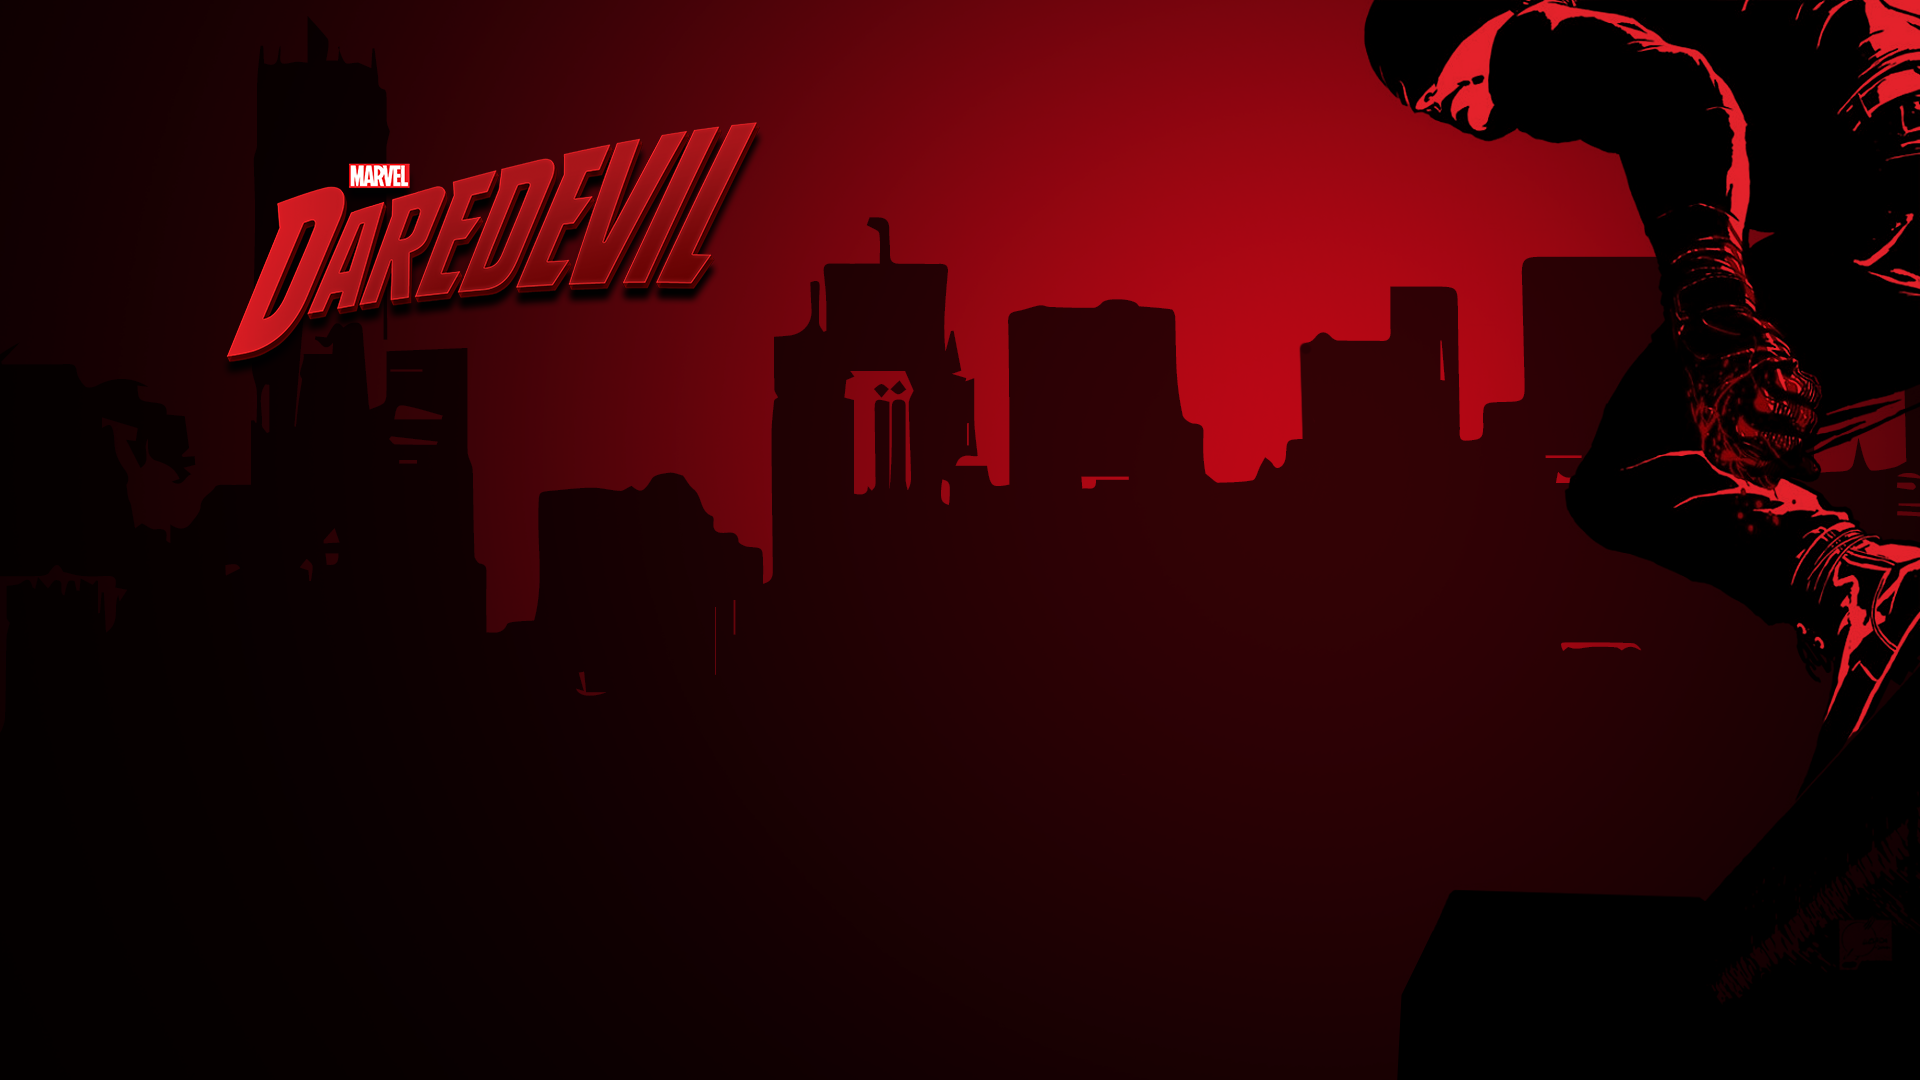 Marvel Daredevil Tv Show